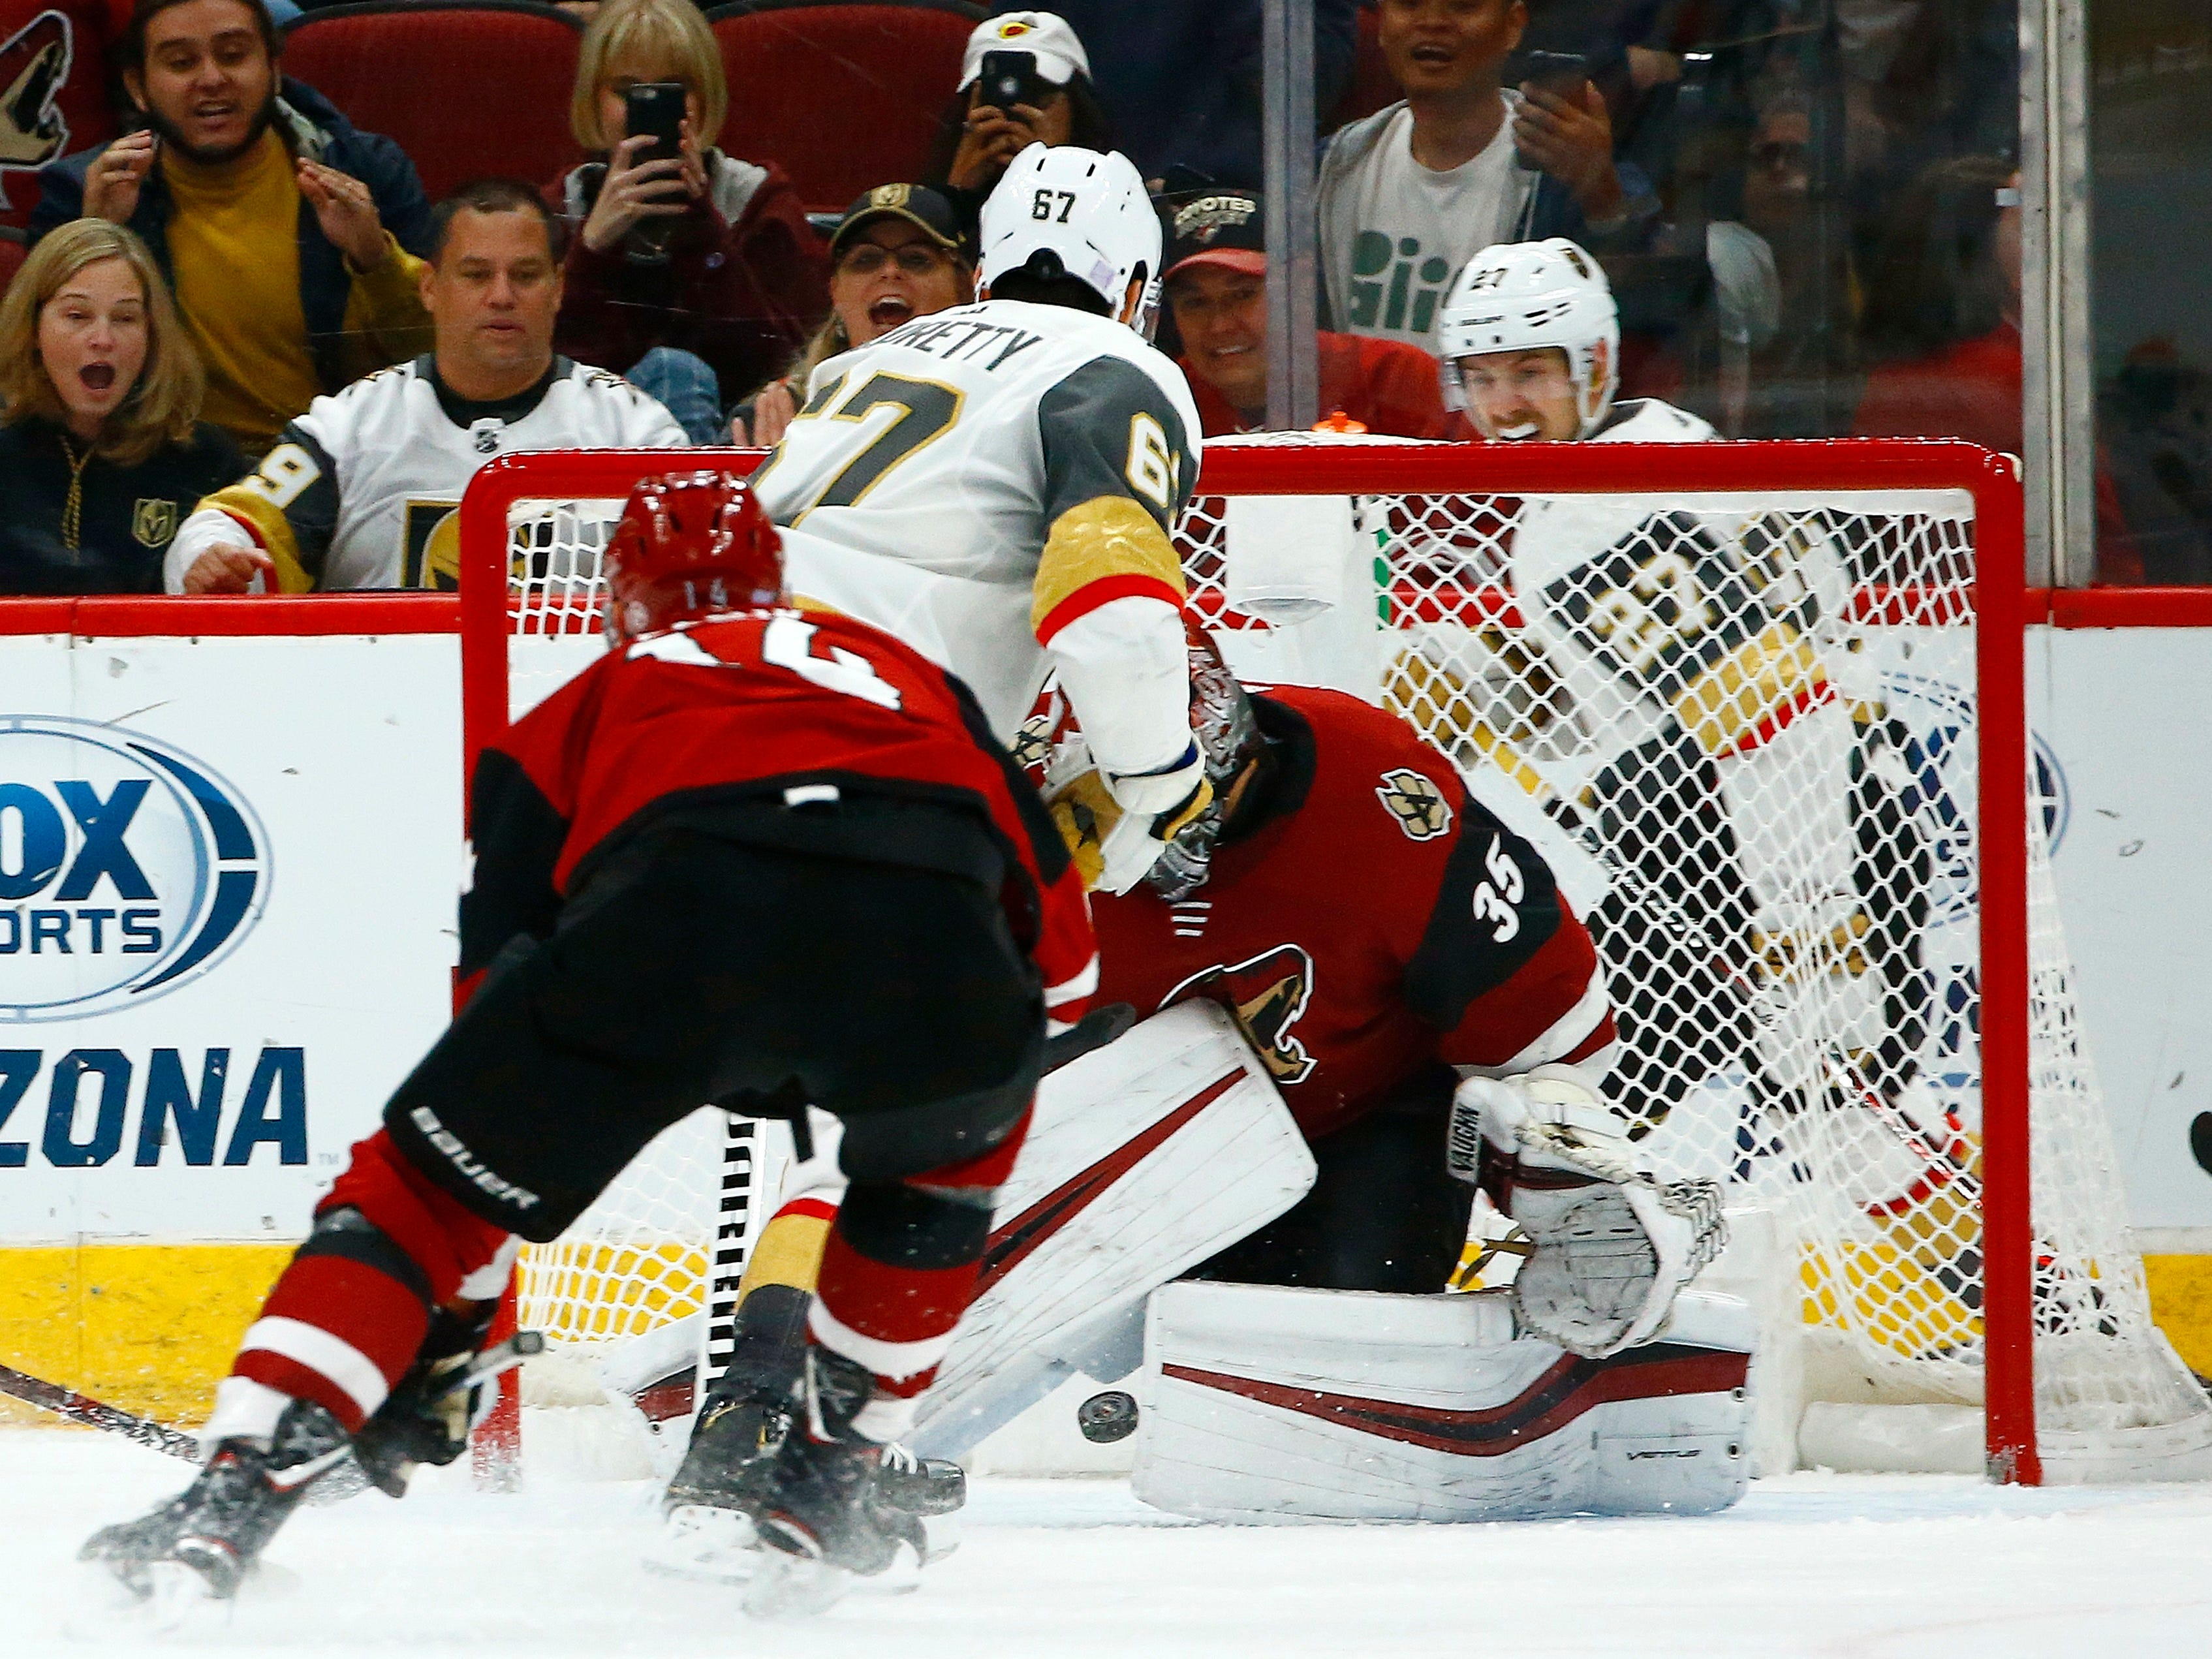 Golden Knights left wing Max Pacioretty (67) scores against Coyotes goaltender Darcy Kuemper in overtime of a game Nov. 21 at Gila River Arena.